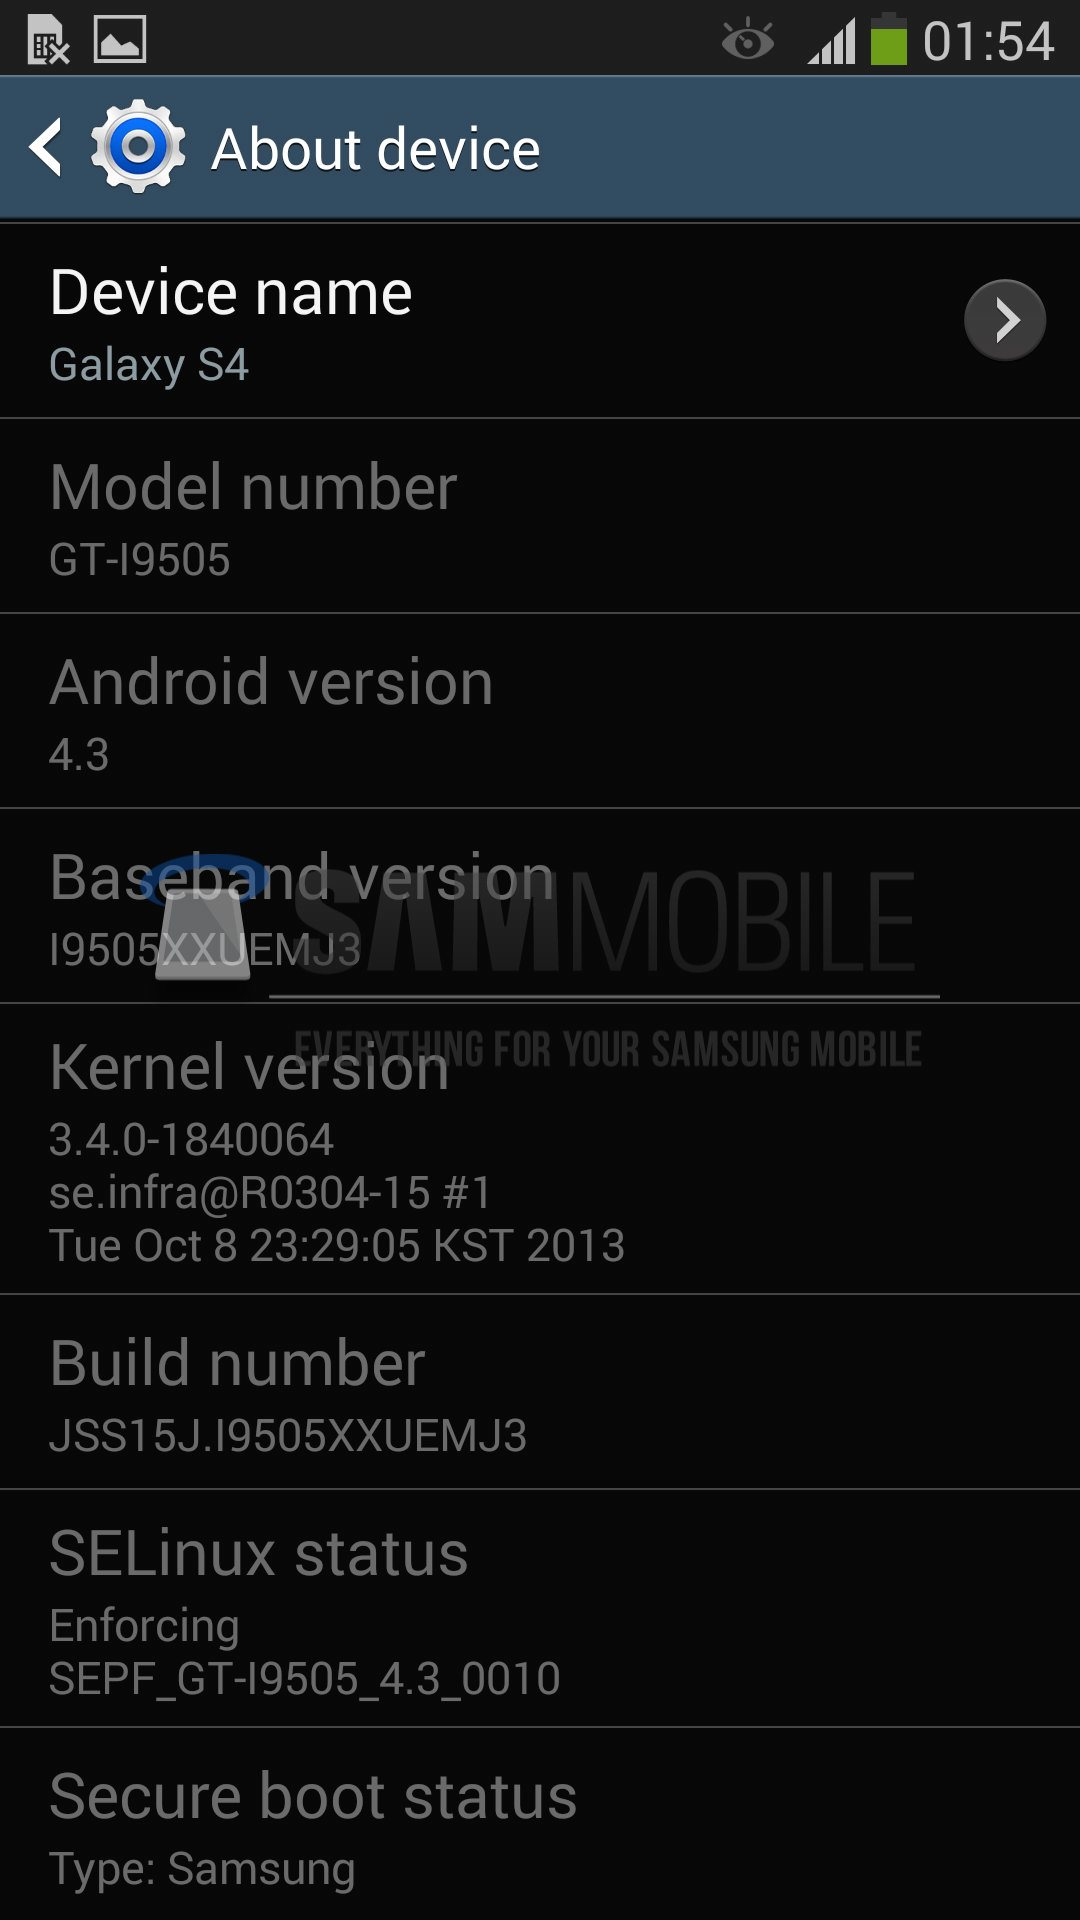 Android 4.3 for Galaxy S4